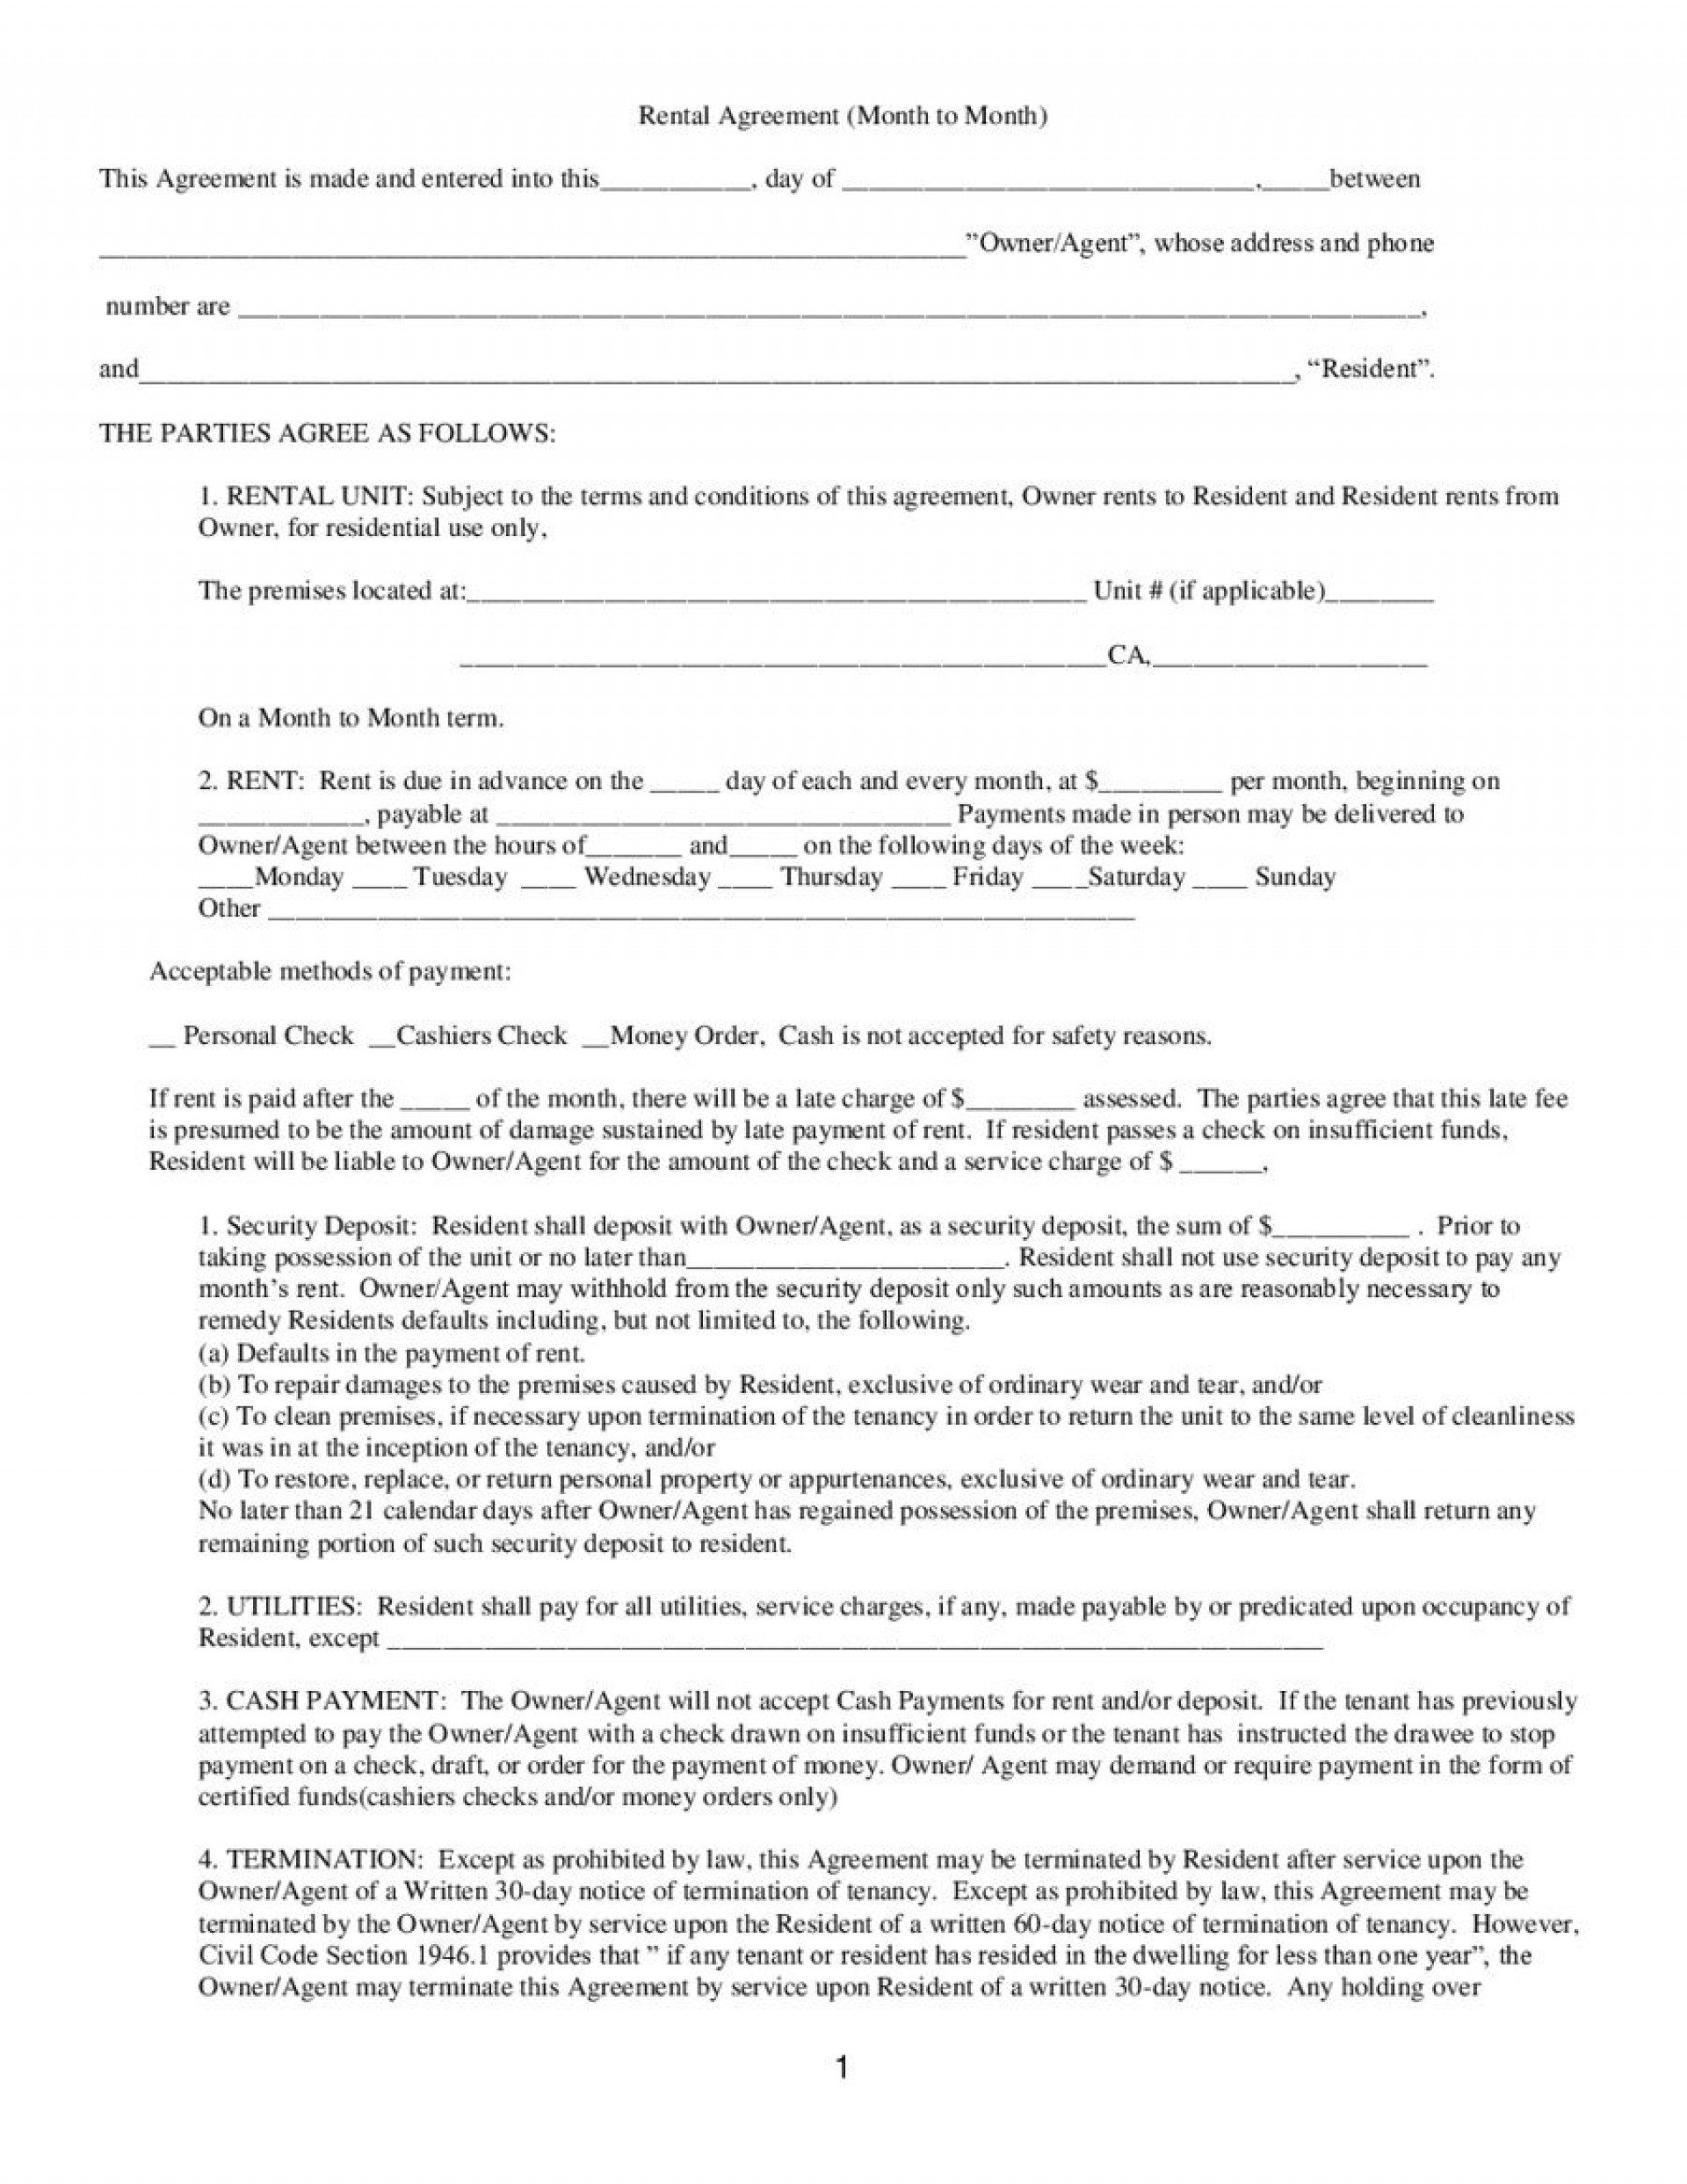 Rental Application Form Template from www.addictionary.org